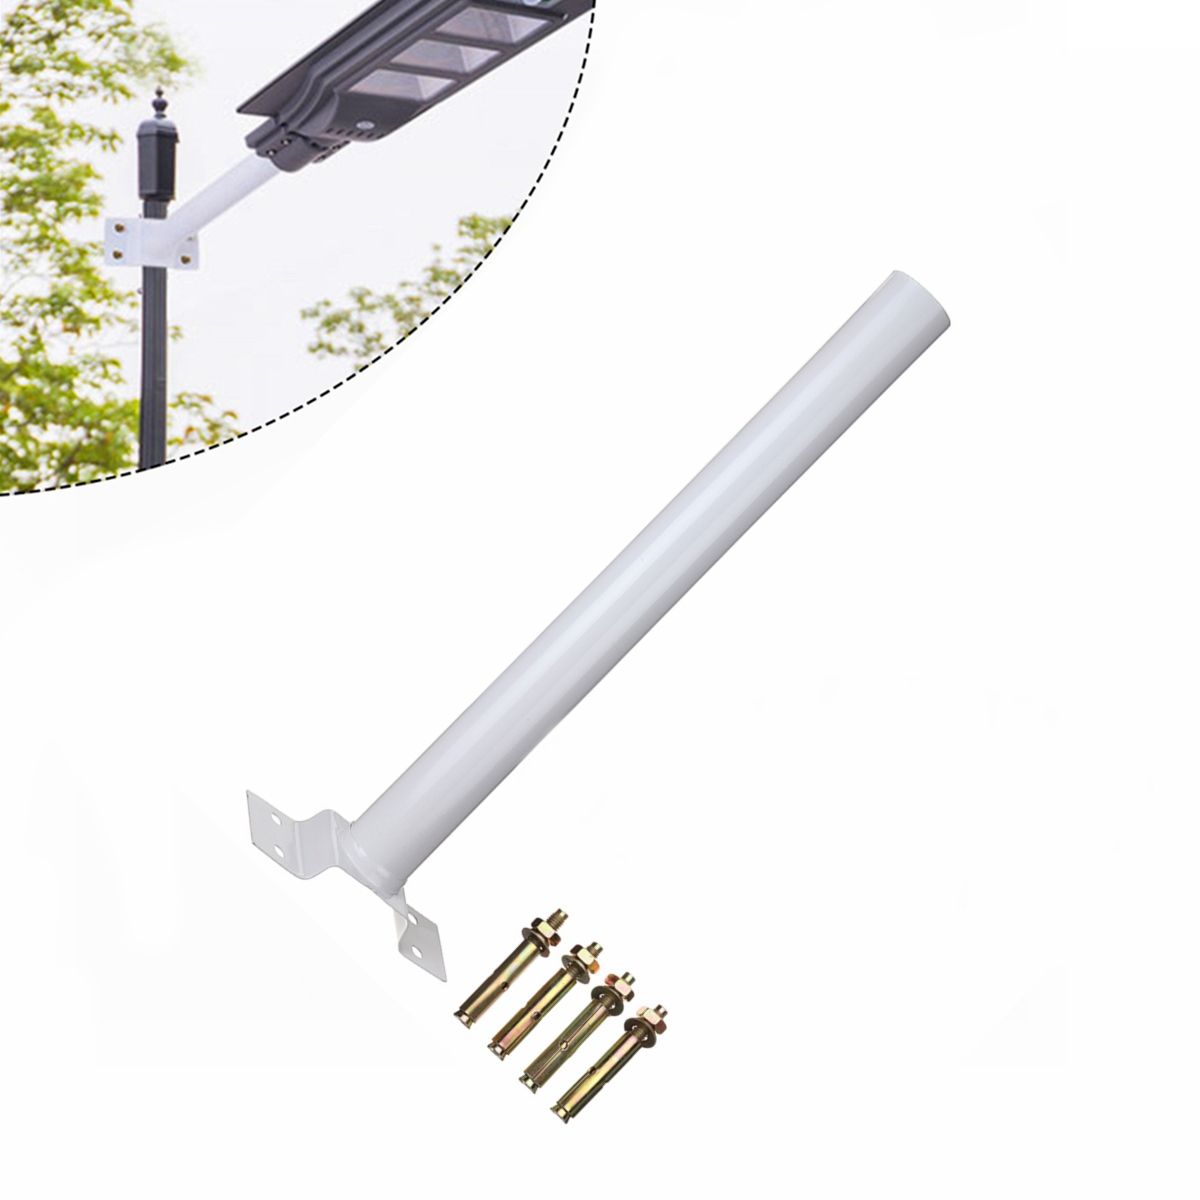 500x50mm 60W 90W 120W LED Solar Street Light Support Btacket with Mounting Accessories White Color Installation Pole Frame|Street Lights| |  - title=